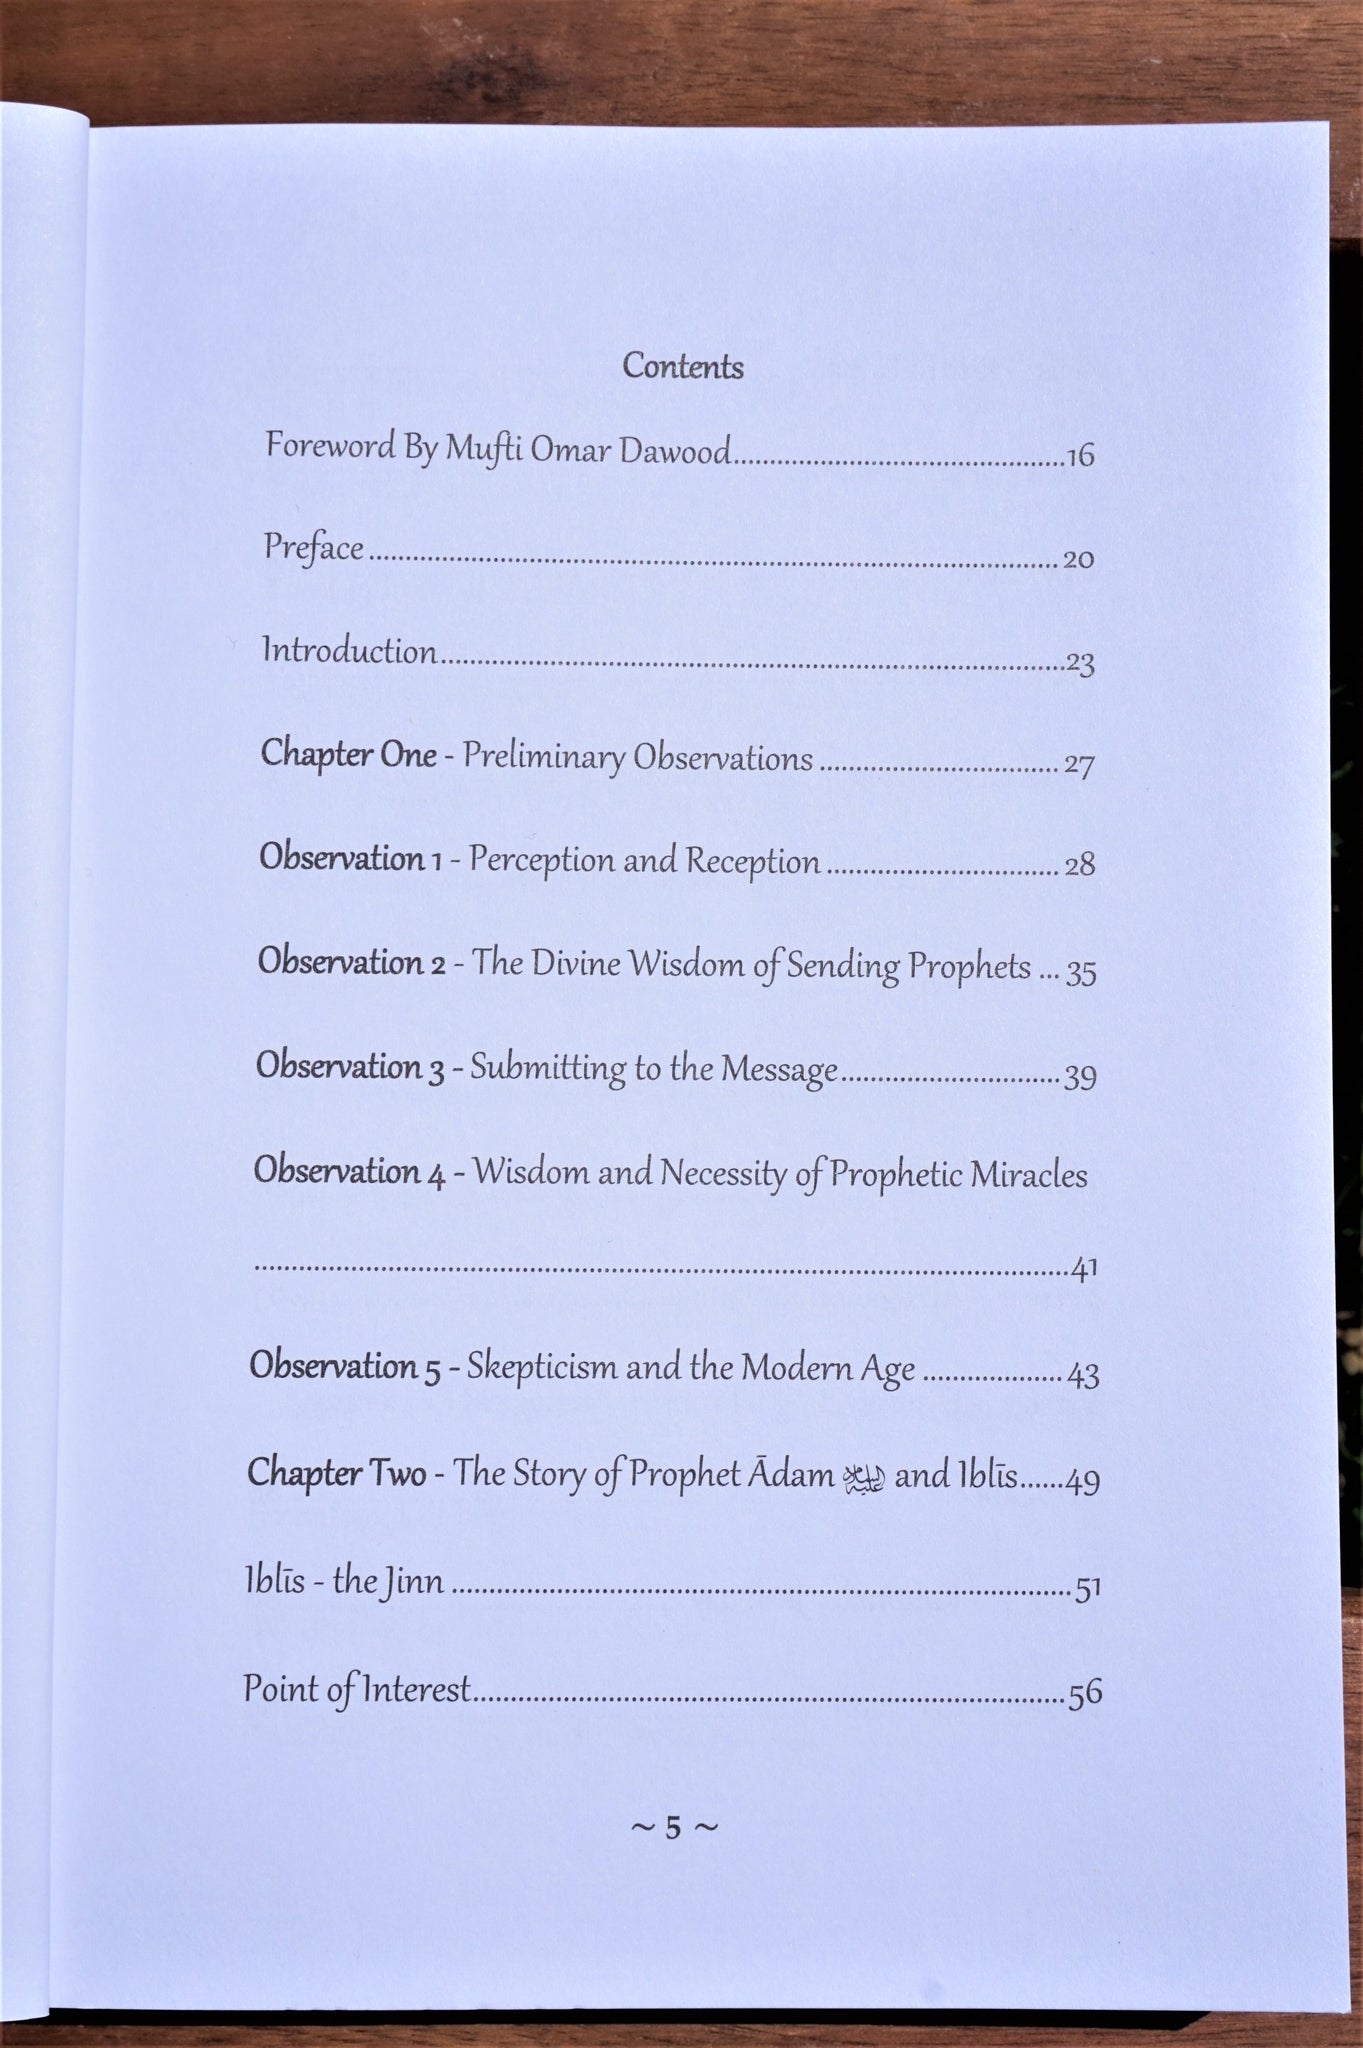 Stories of the Prophets for the Modern Age - Volume 1: The Resolute